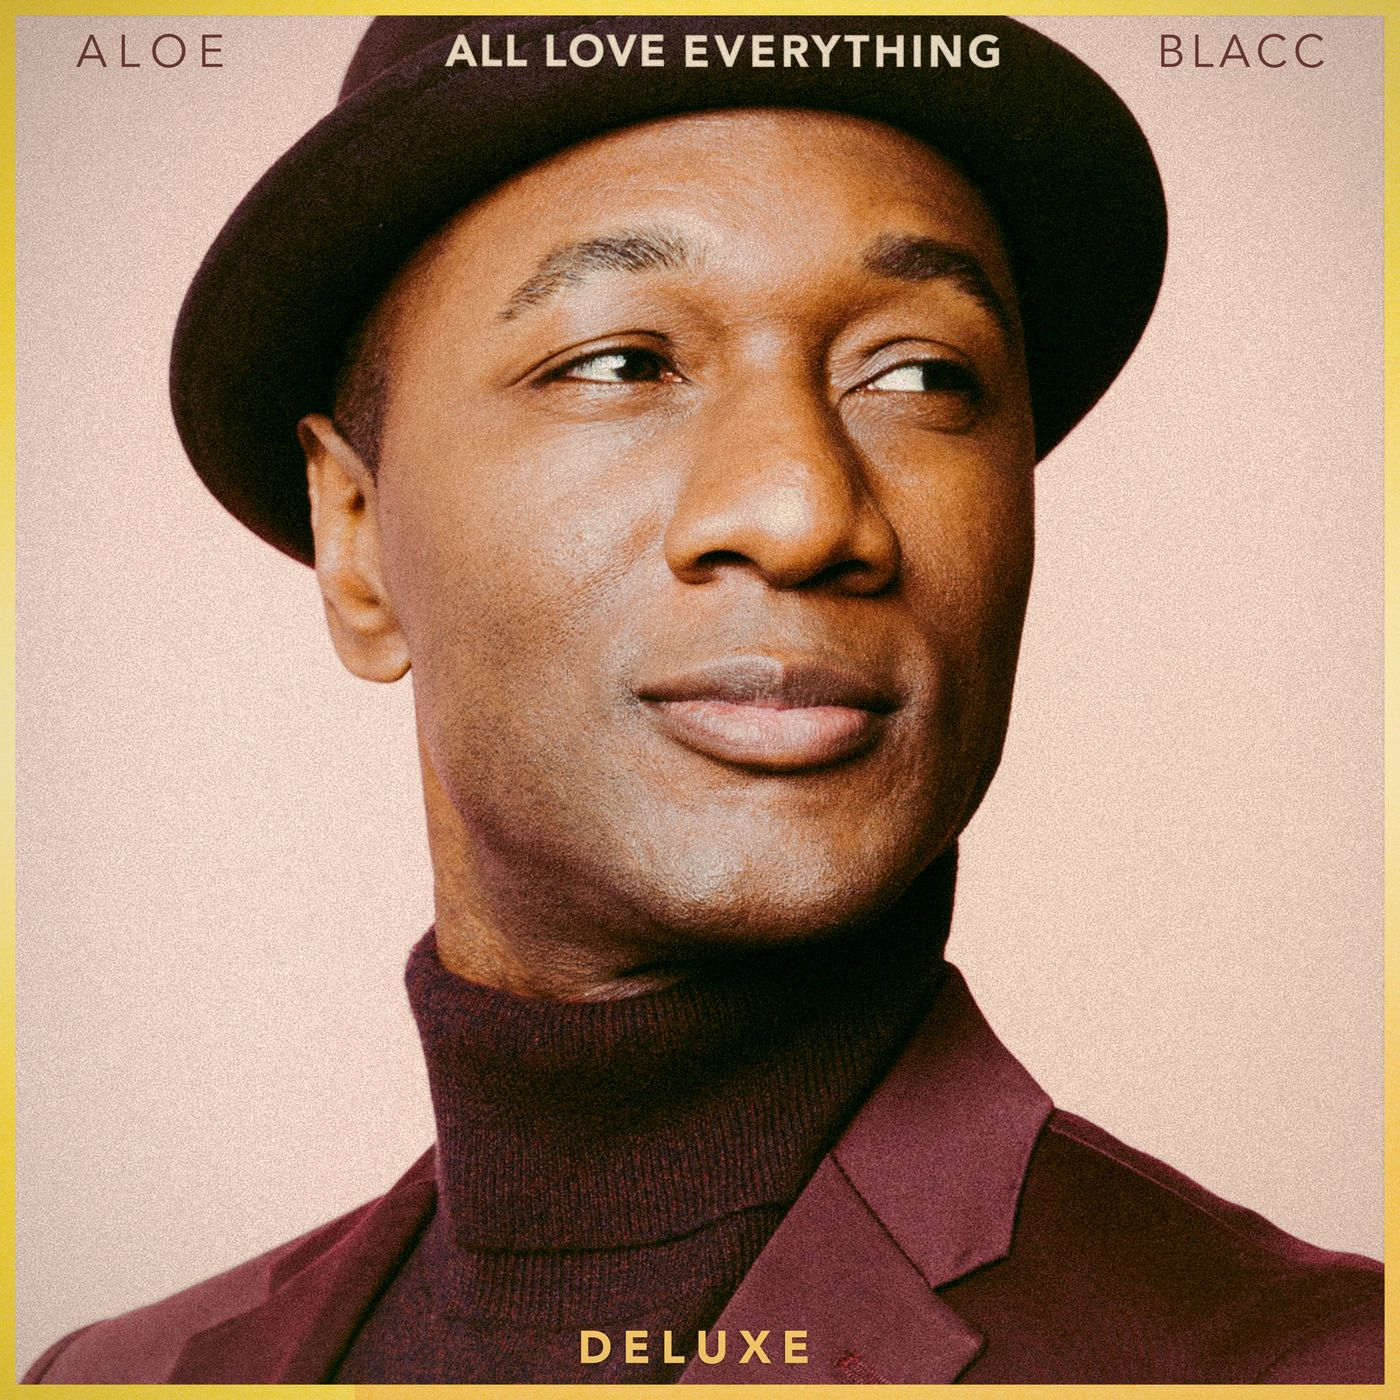 Cover album All Love Everything (Deluxe)